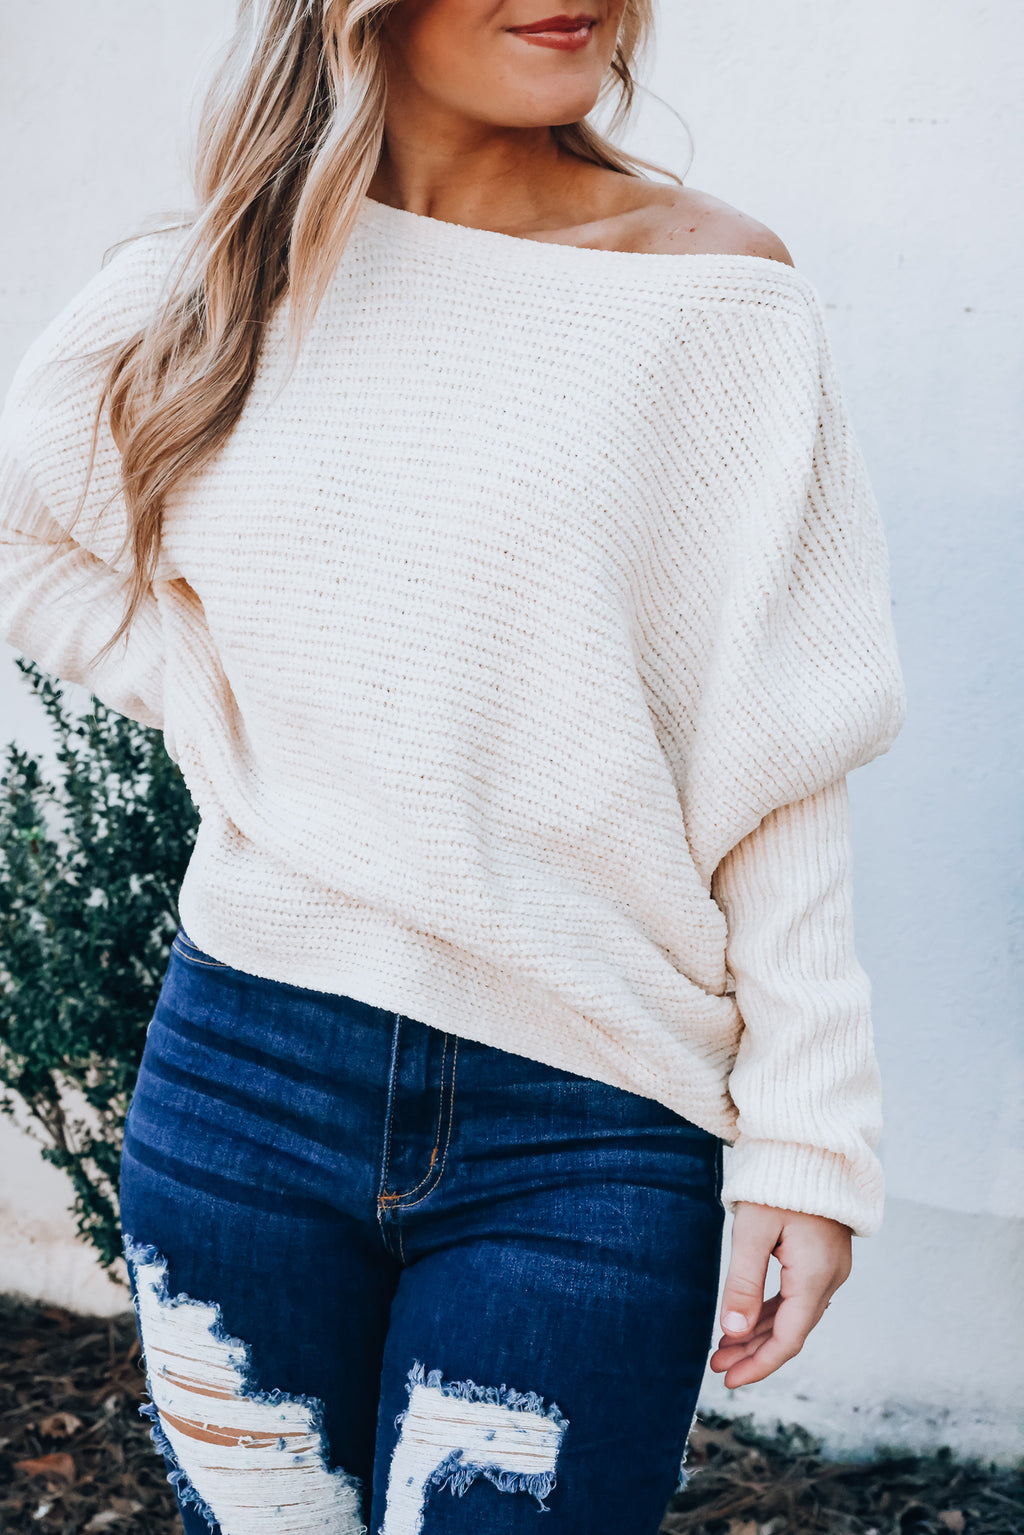 Caprice Knit Sweater